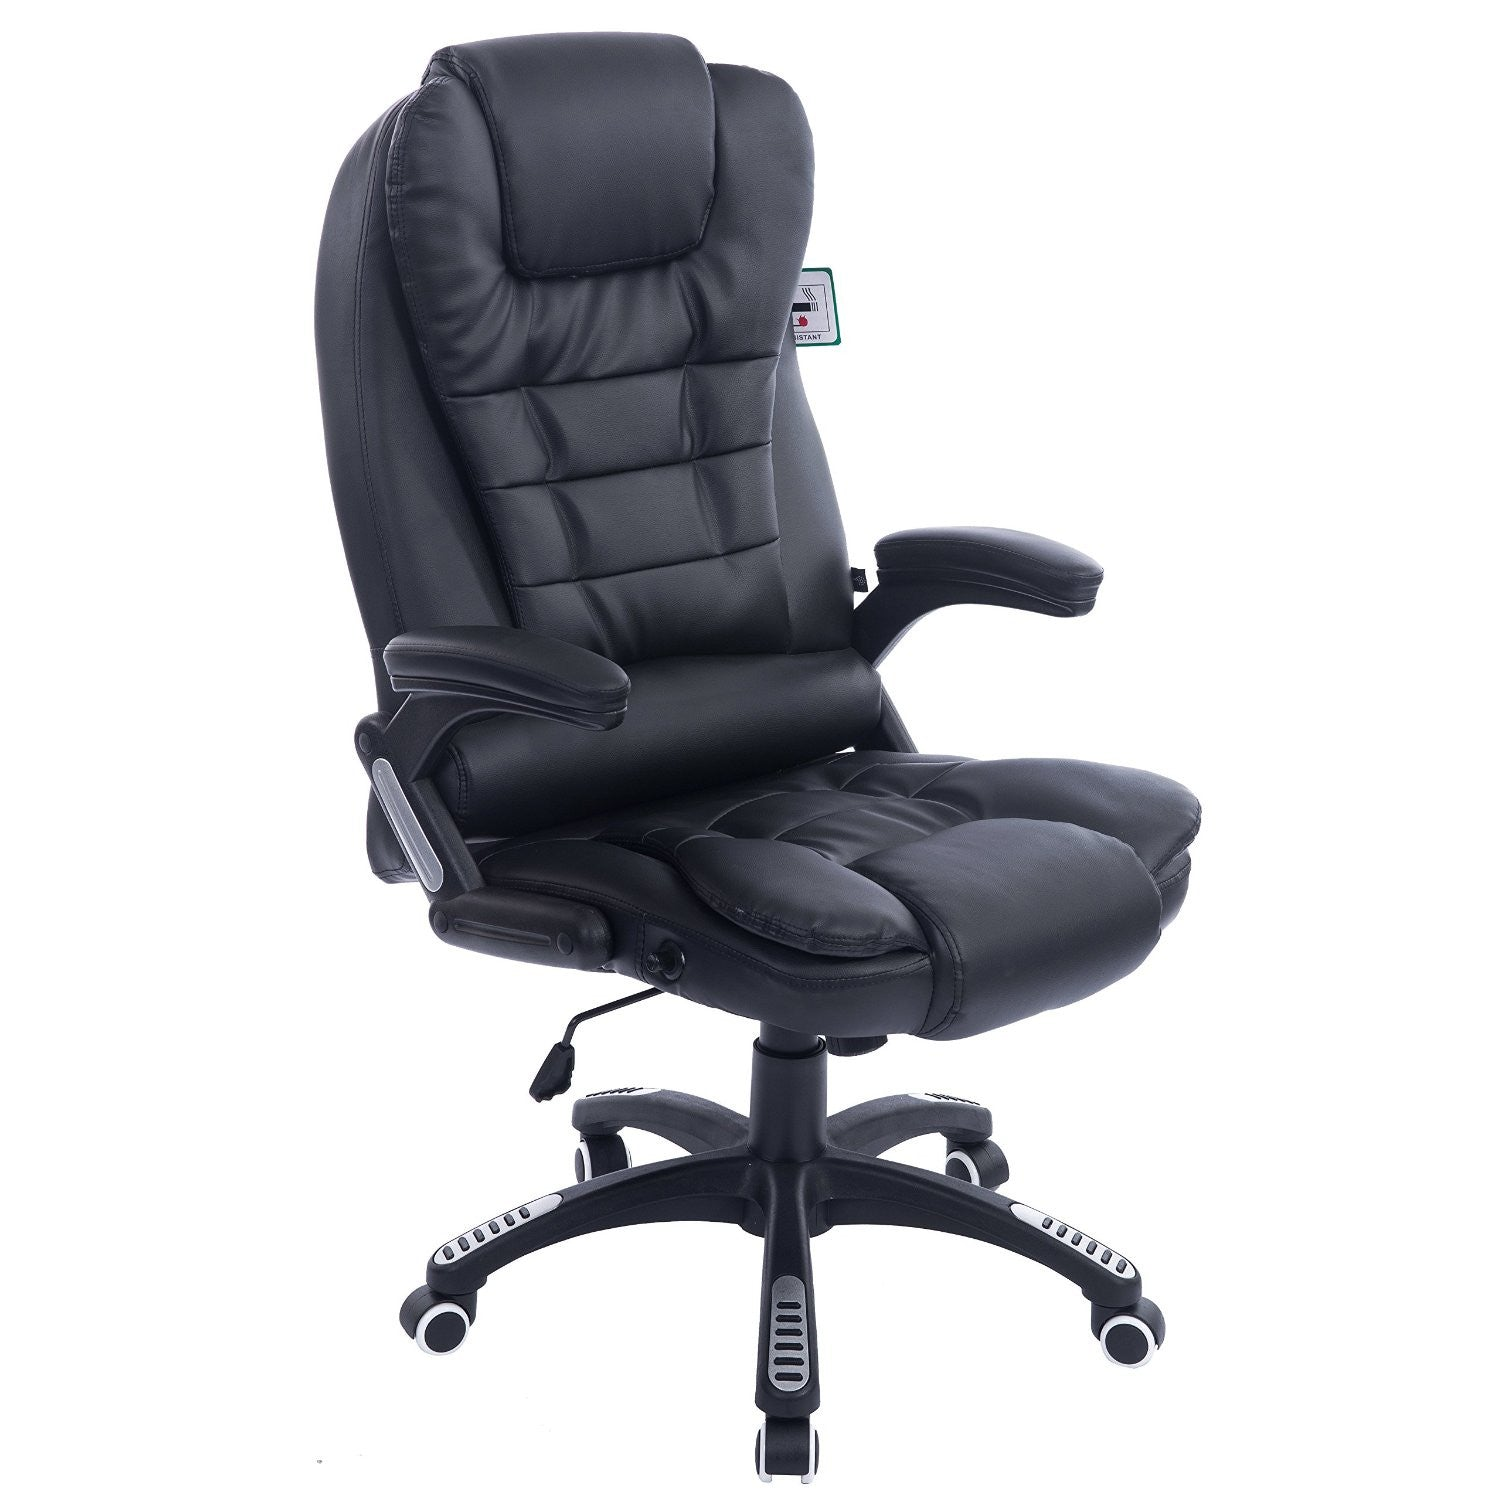 hullr recliner ergonomic computer with detachable racing design reclining back quilted executive diamond gaming office hullrgamingracingcomputerofficechair headrest product chair backrest lumbar high